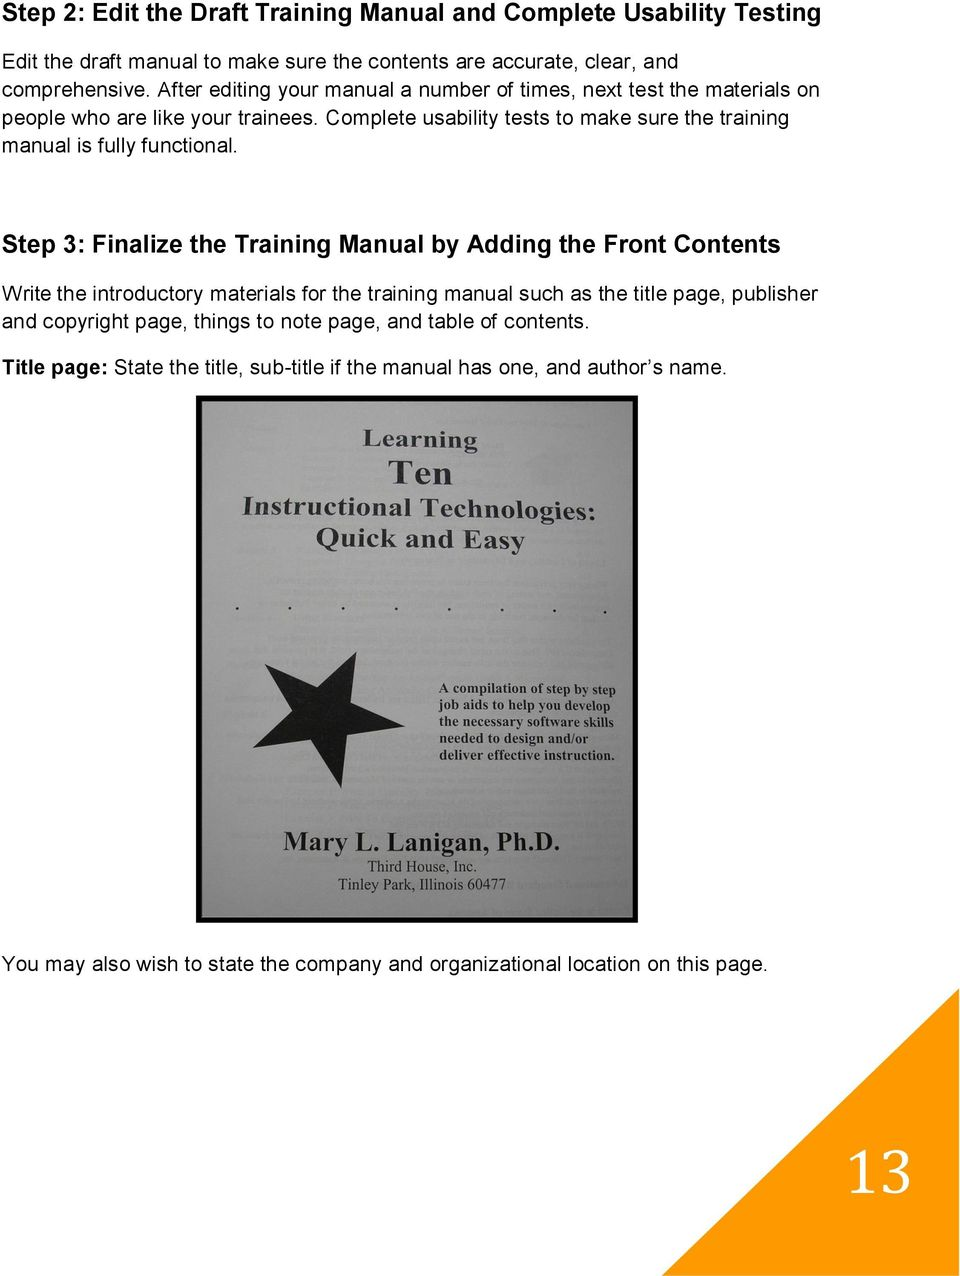 Complete usability tests to make sure the training manual is fully  functional.